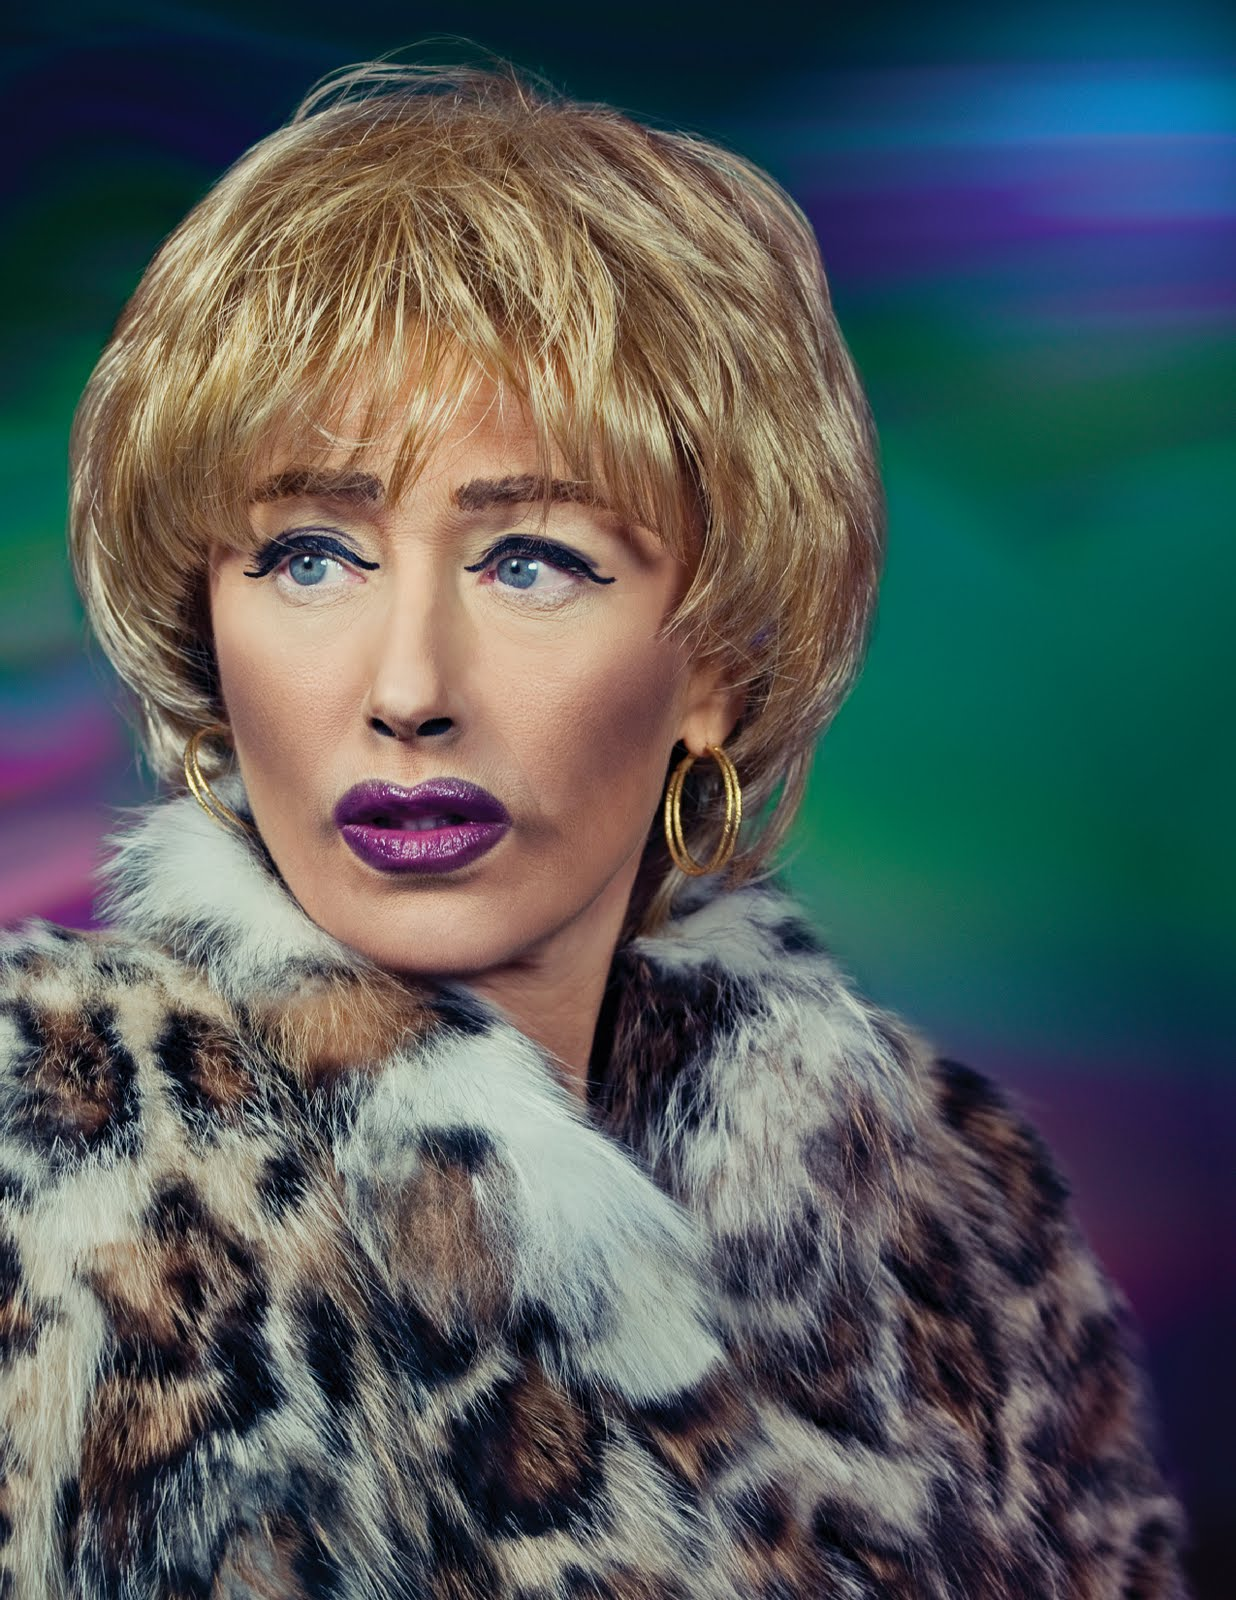 beauty squaredCindy Sherman Photography Self Portraits